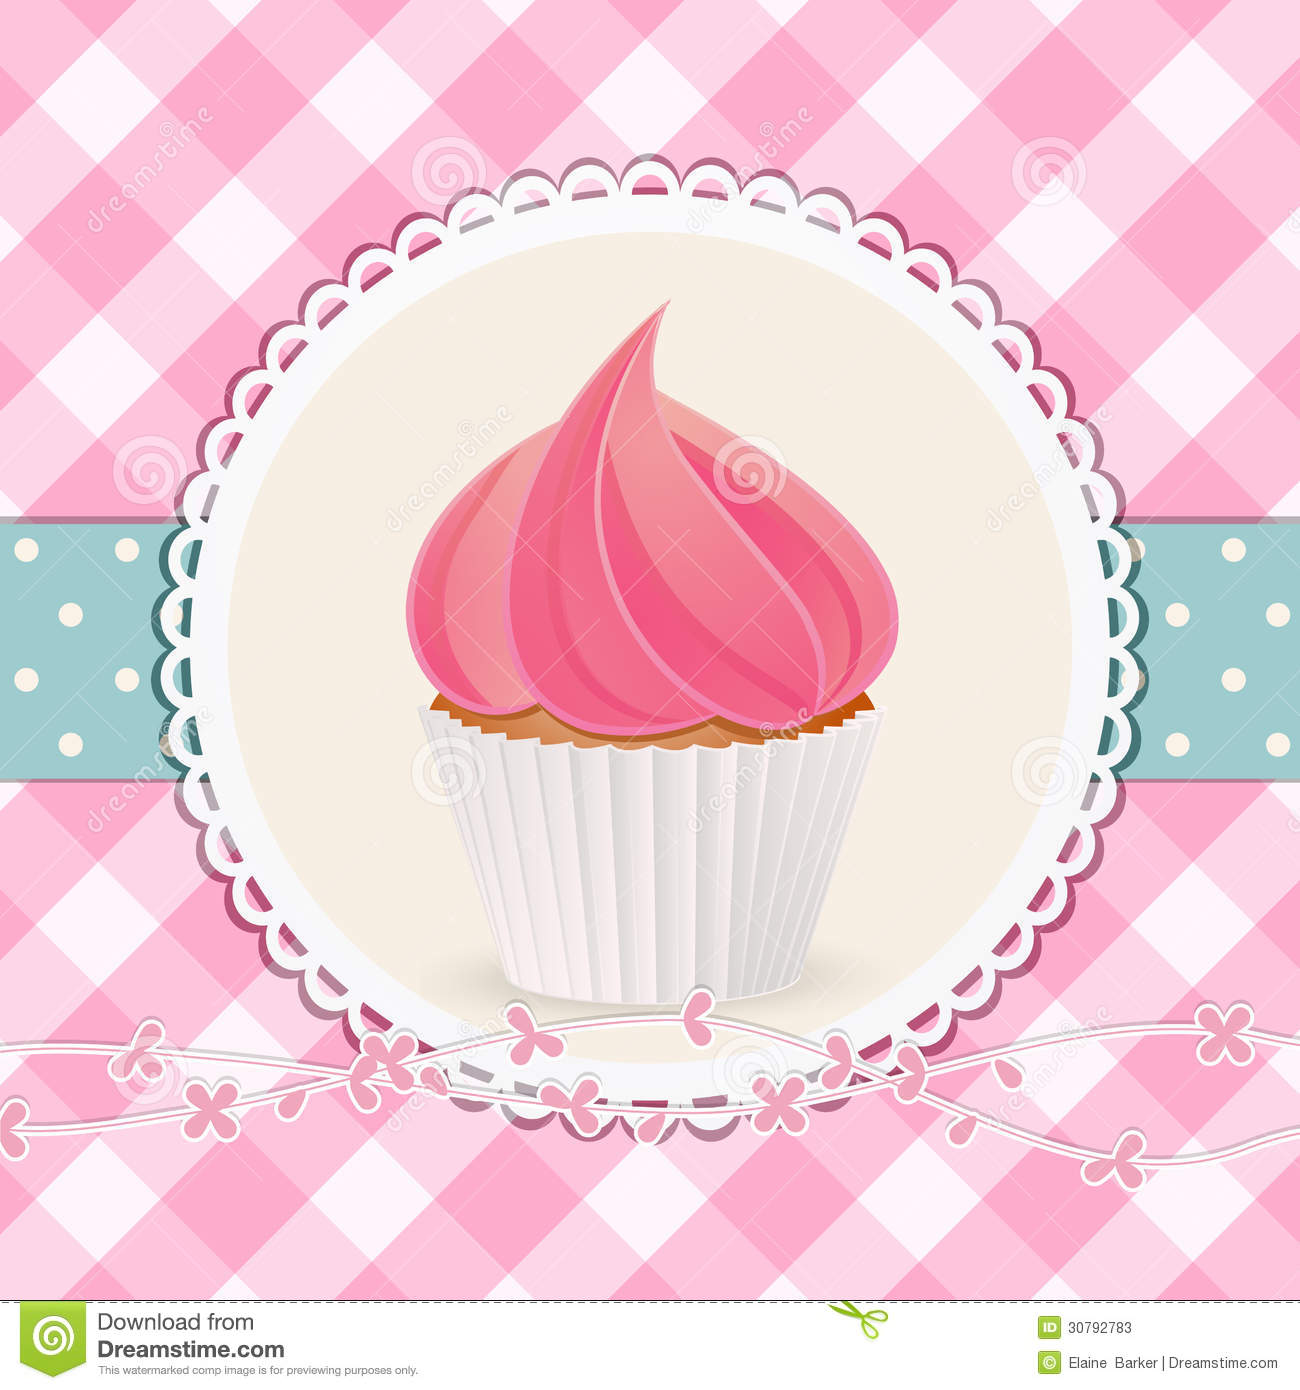 Cupcake with pink icing on pink gingham background